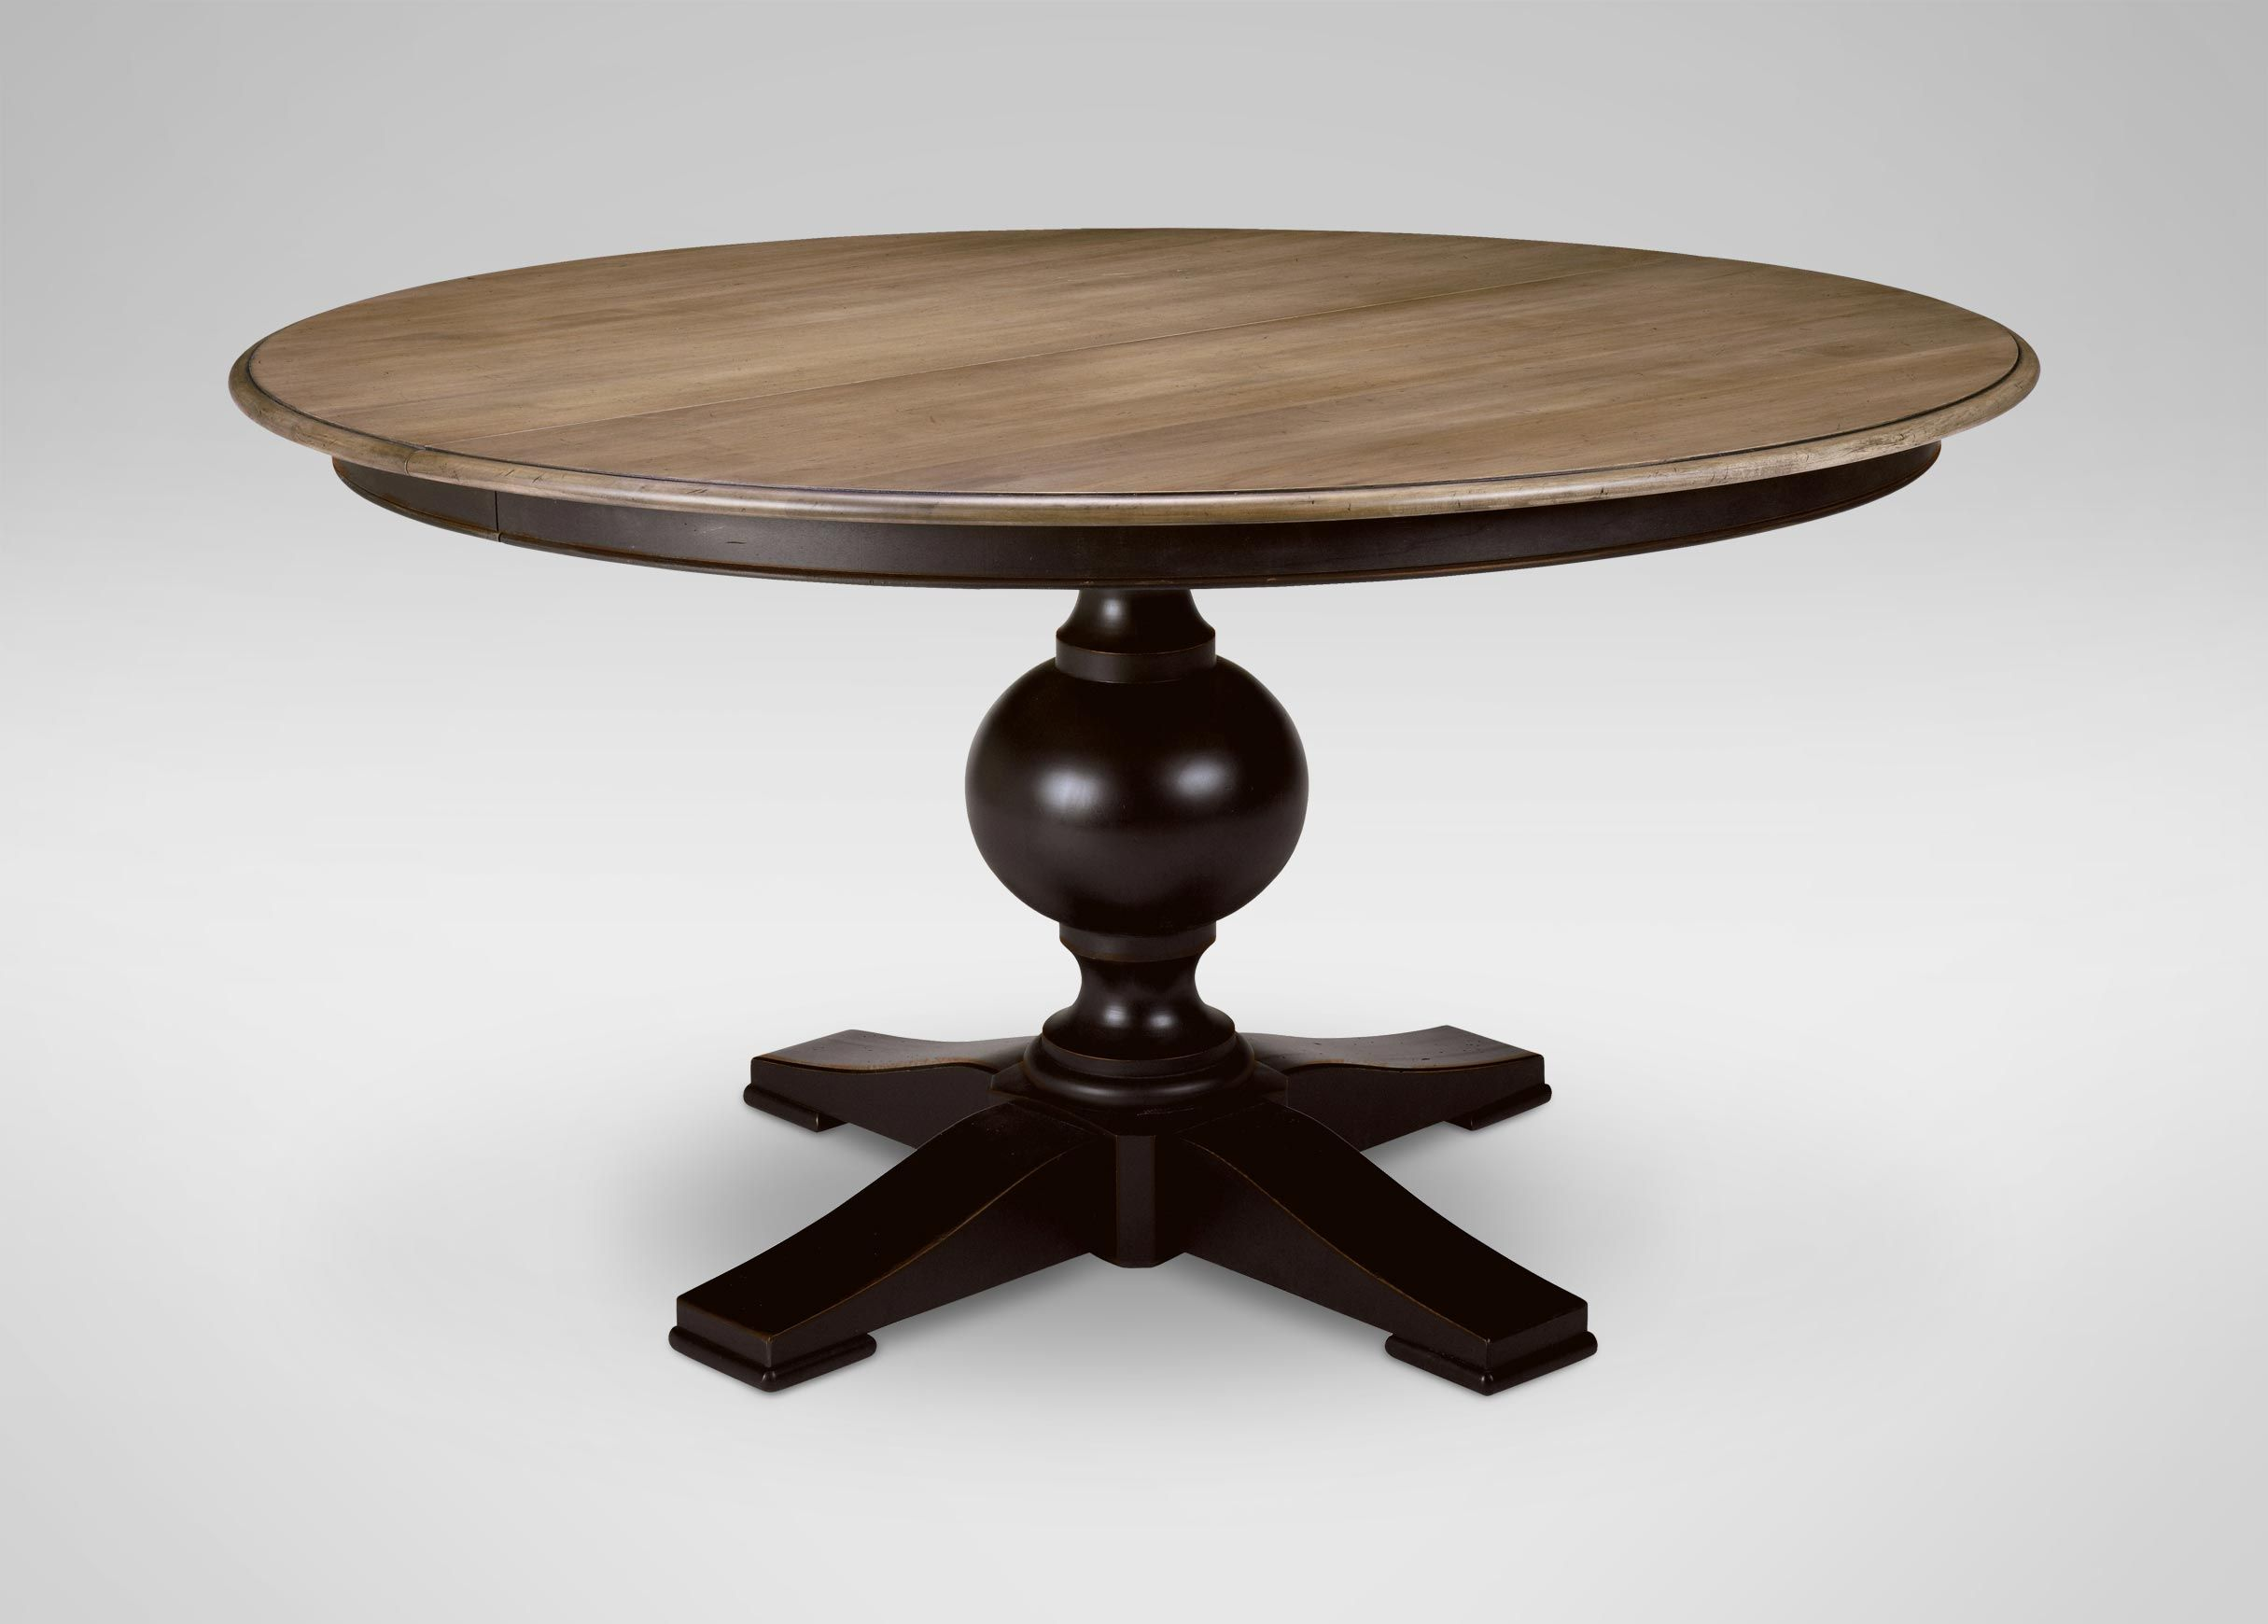 442a43d081eb2 Cooper Round Dining Table